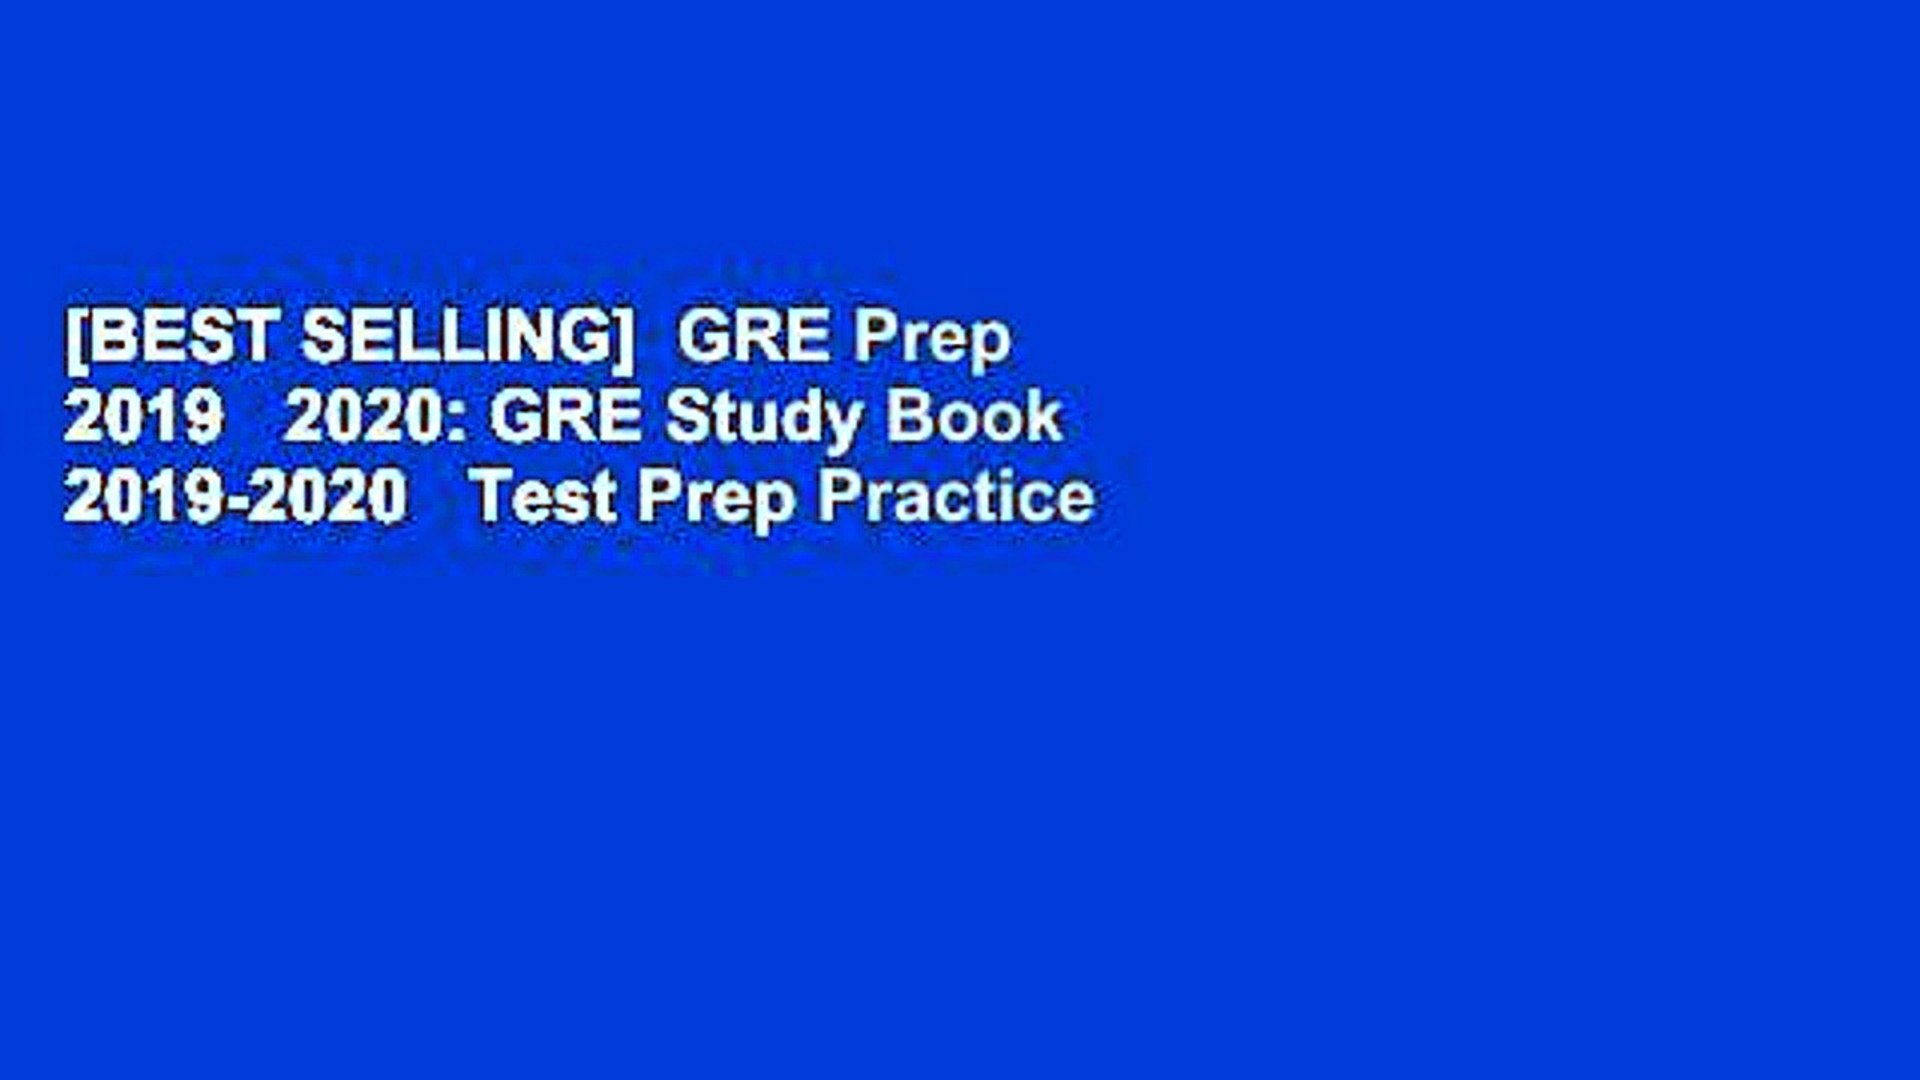 Best Gre Prep Book 2020.Best Selling Gre Prep 2019 2020 Gre Study Book 2019 2020 Test Prep Practice Test Questions